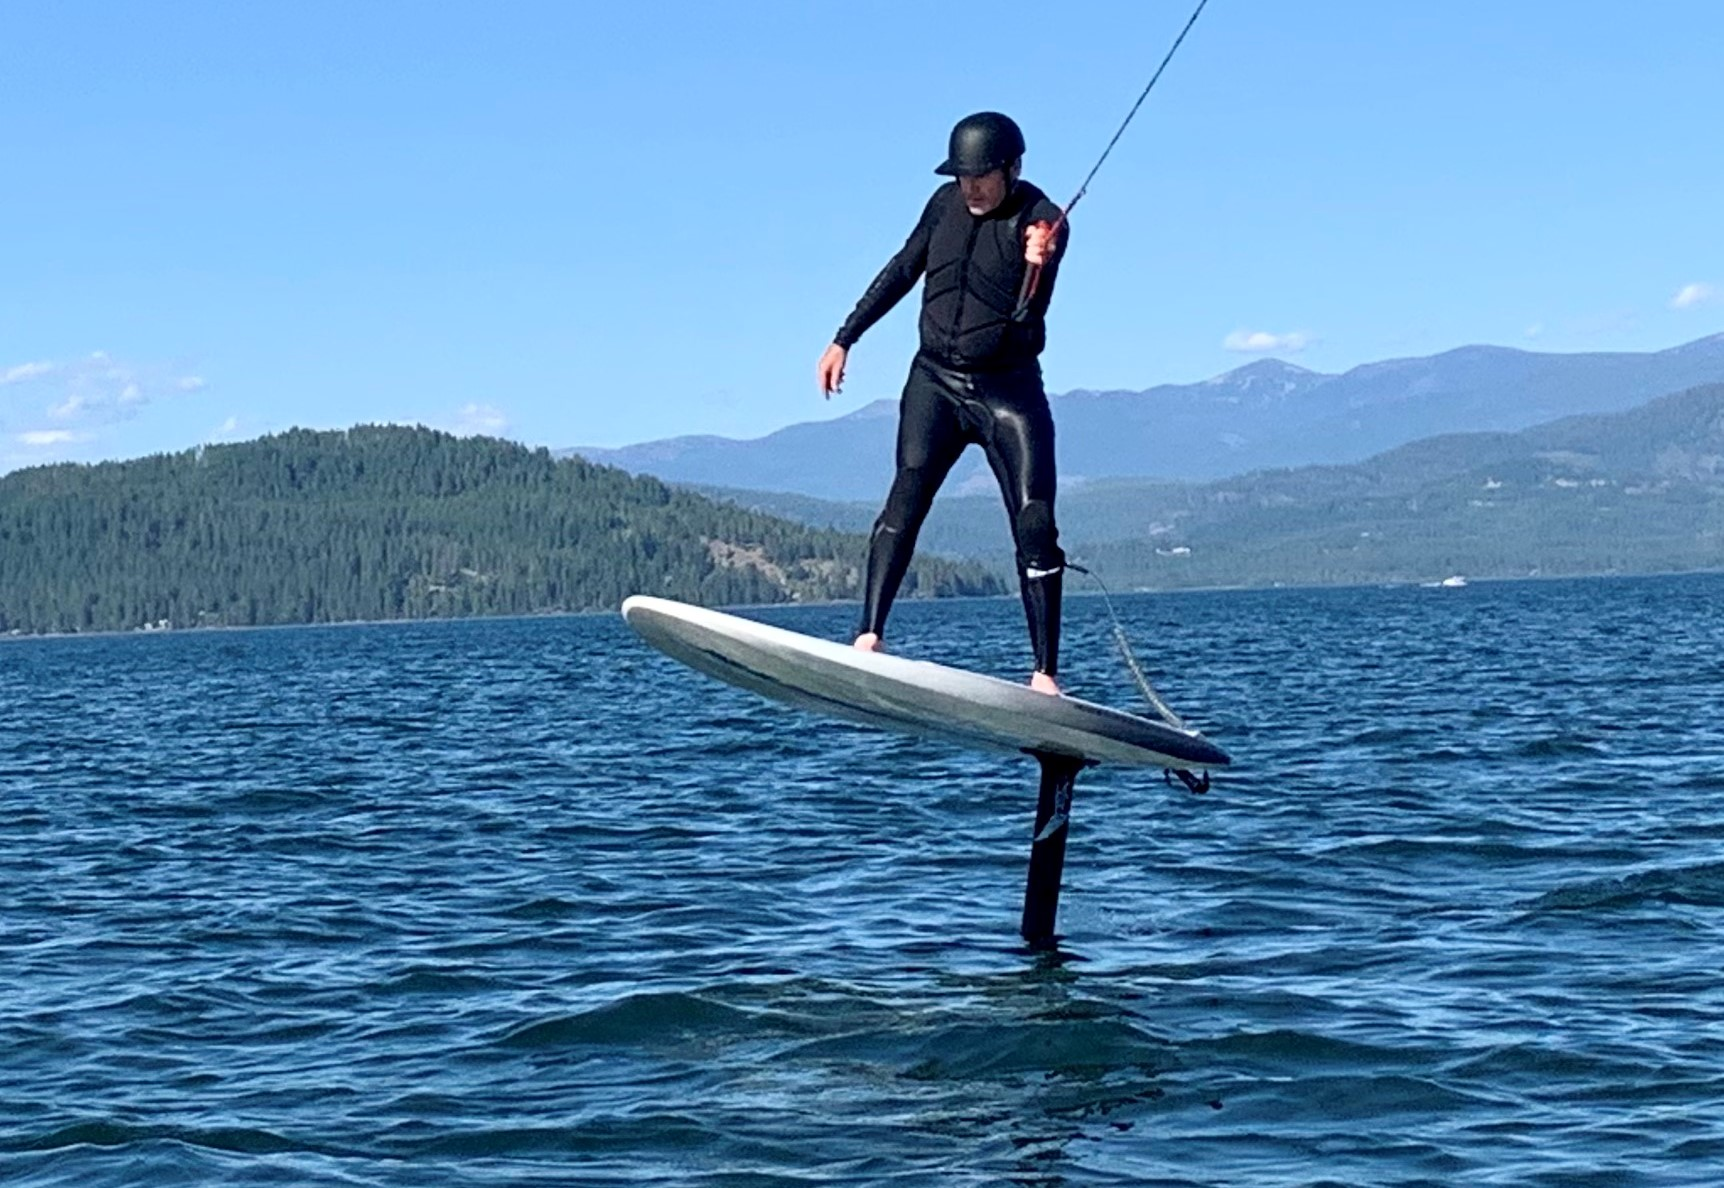 Man standing on wind foiling board, getting towed behind power boat, on Lake Pend Oreille.